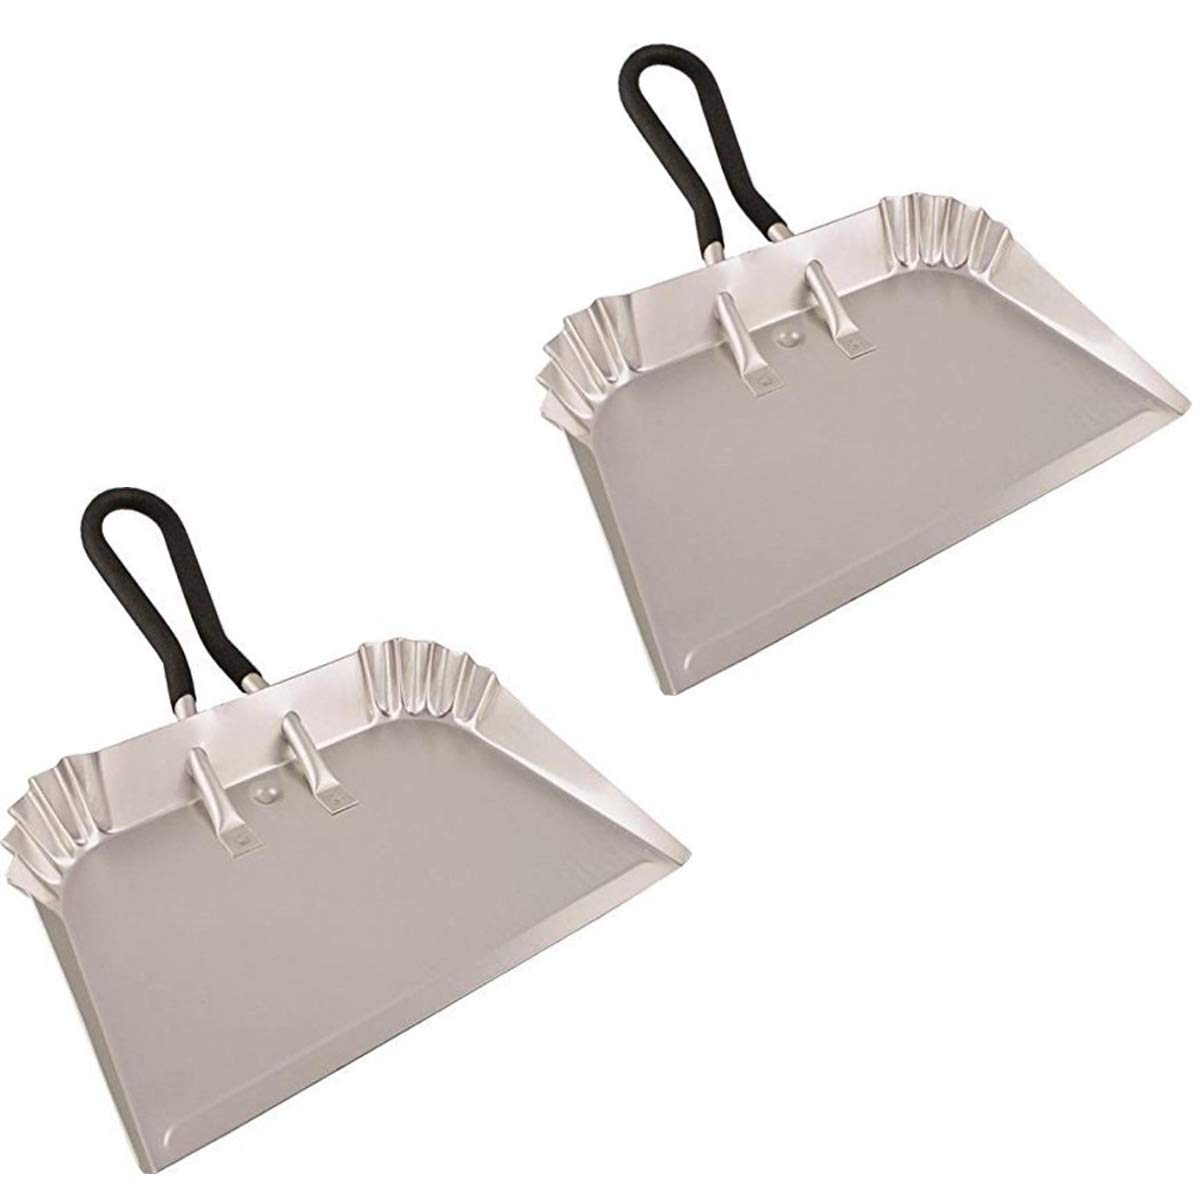 Edward Tools Extra Large Industrial Aluminum DustPan 17'' - Lightweight - half the weight of steel dust pans with equal strength - For large cleanups - Rubber Loop handle for comfort/hanging (2) by Edward Tools